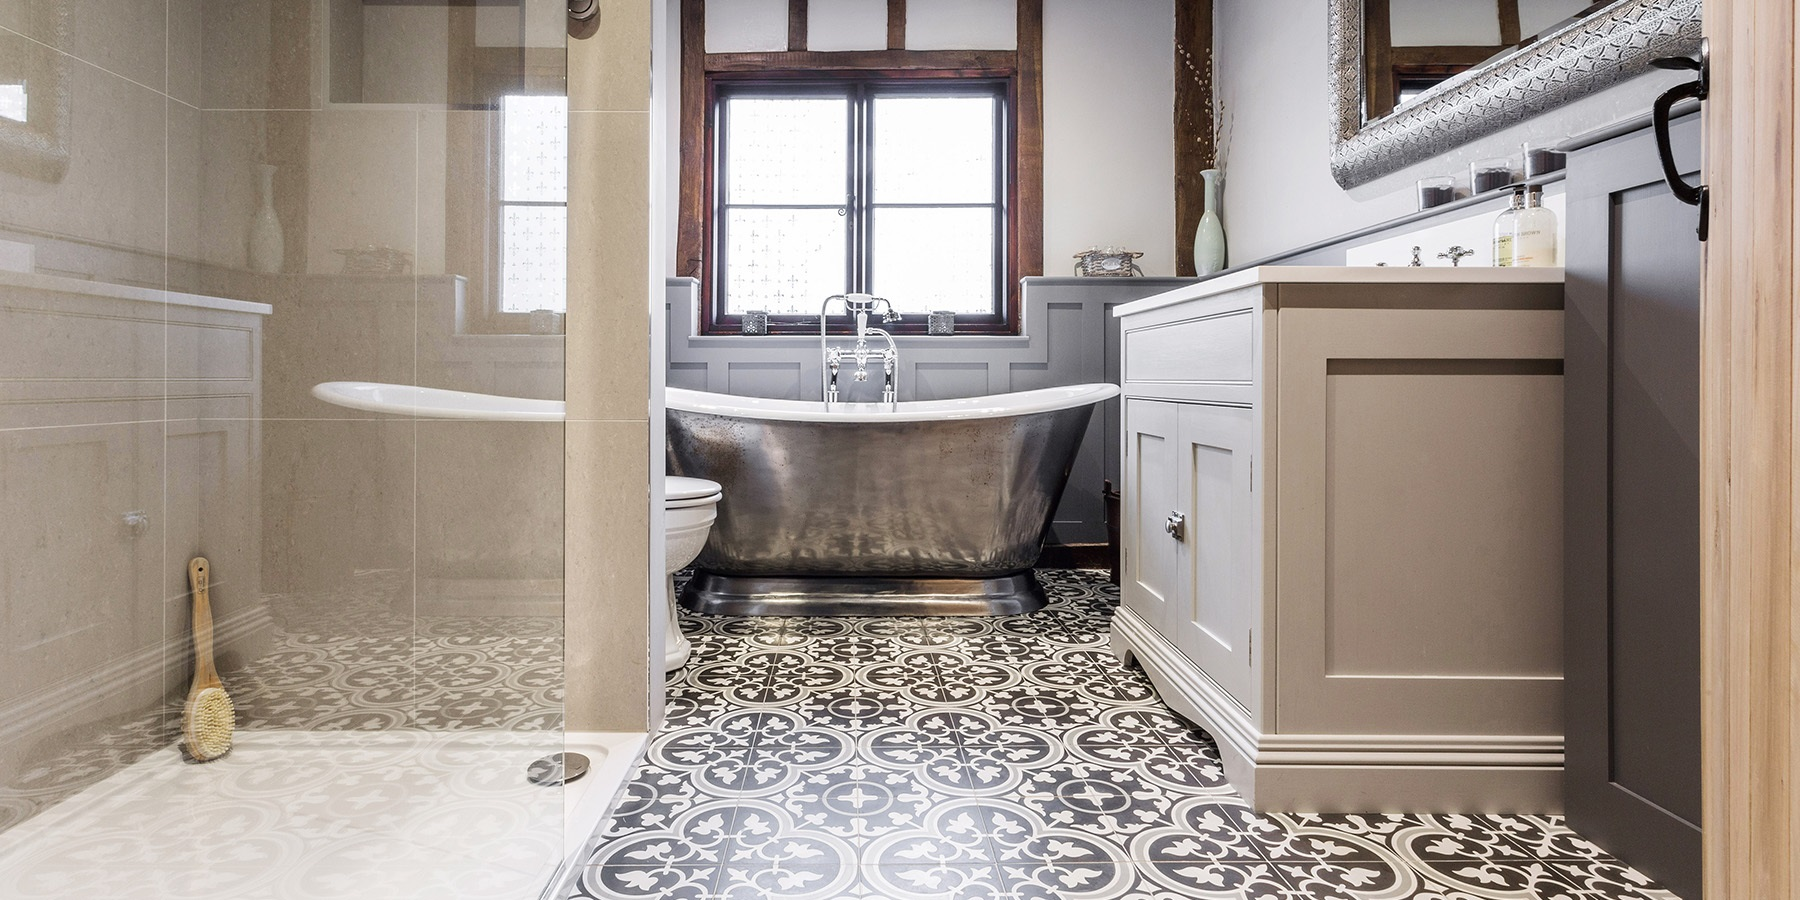 Traditional Style Luxury Bathroom Design - Burlanes traditional handmade bathroom furniture with handmade Hurlingham cast iron bath and Ca'Pietra encaustic floor tiles.